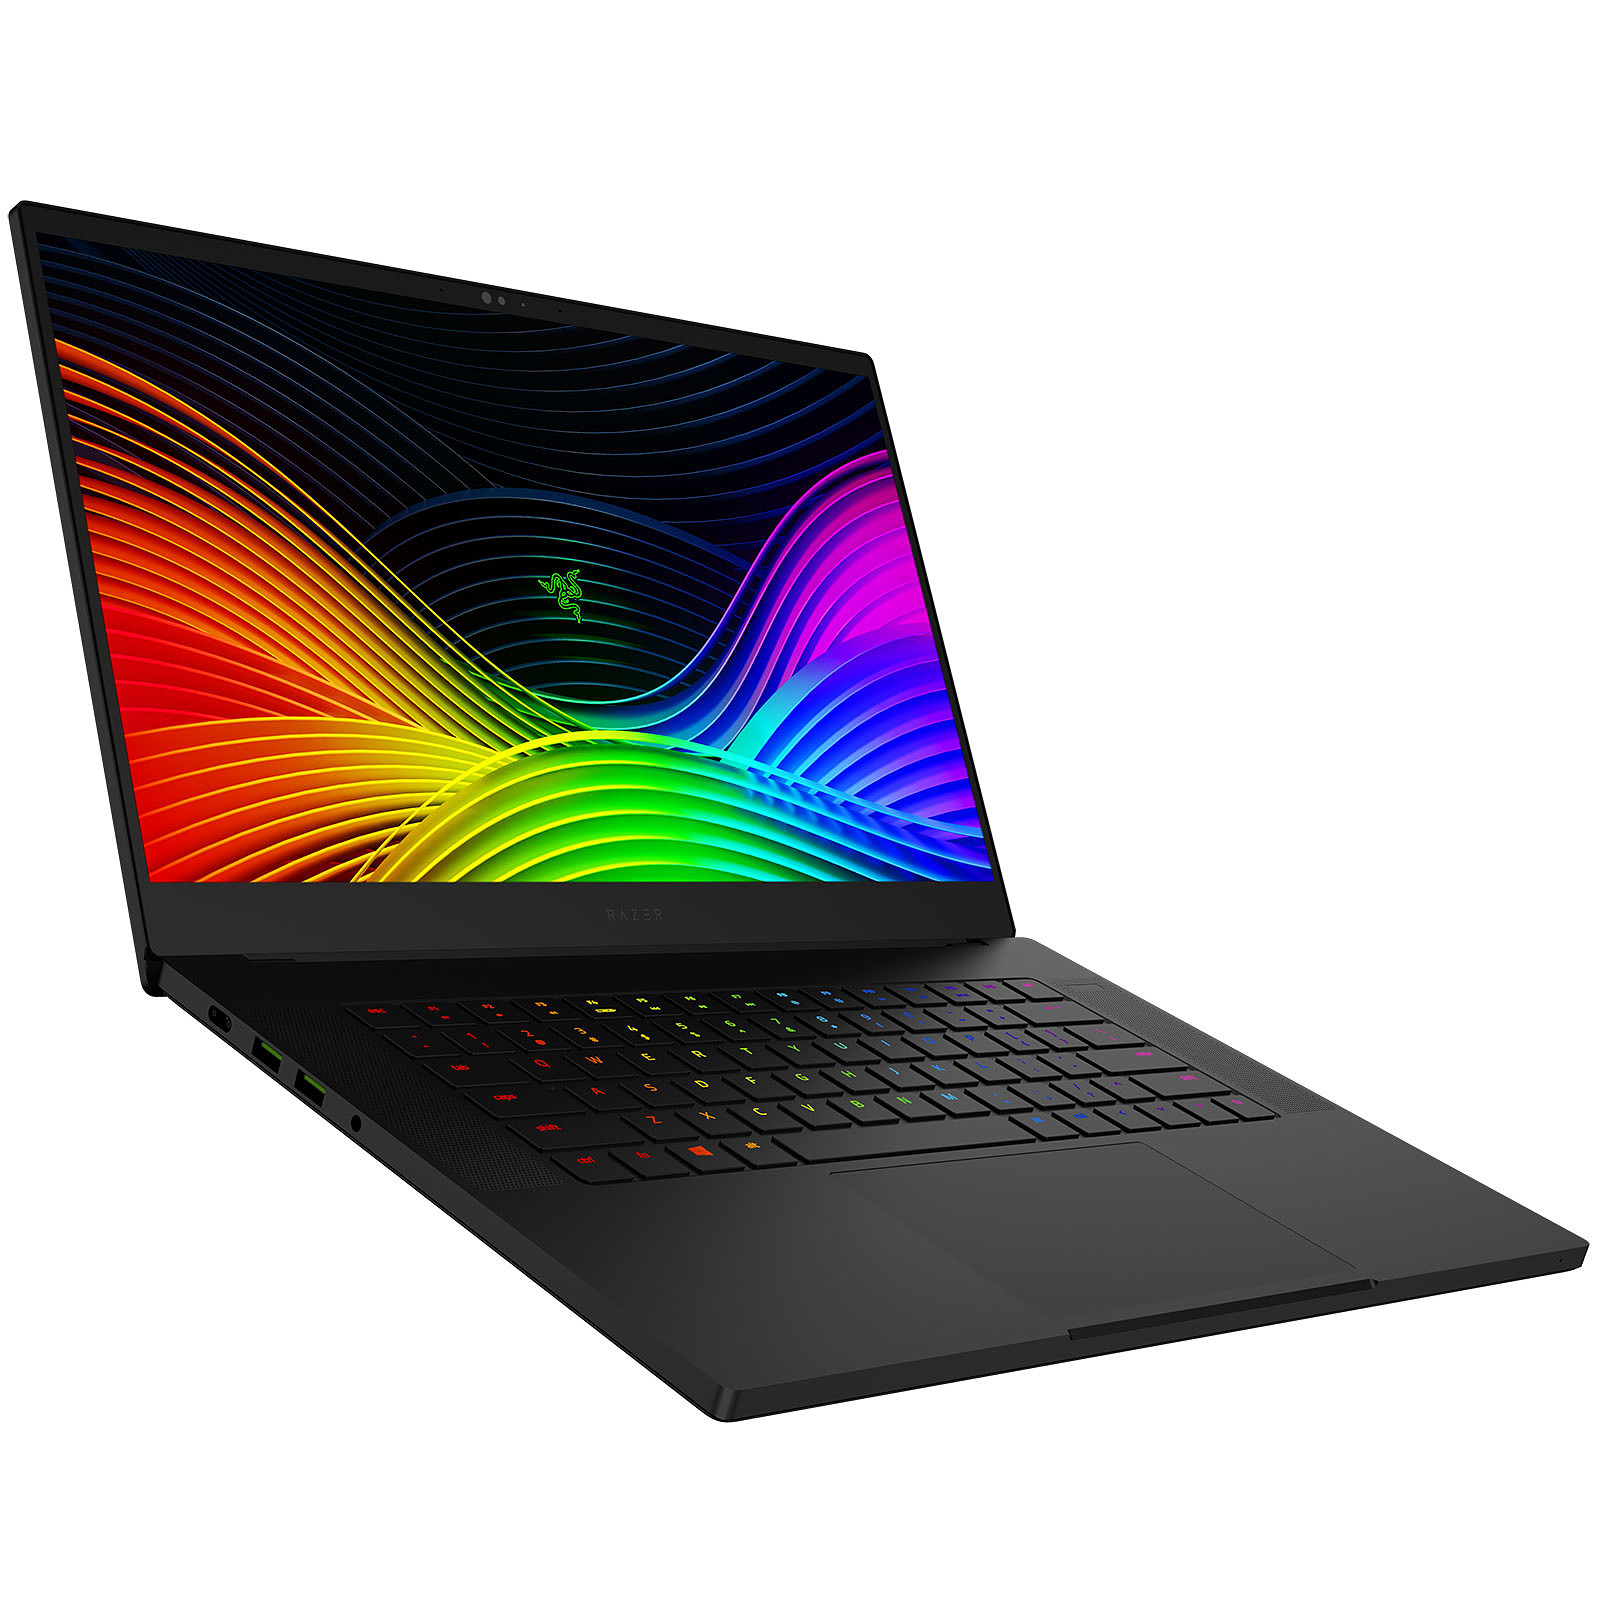 Image result for Razer Blade 15 (RZ09-03006F92-R3F1)